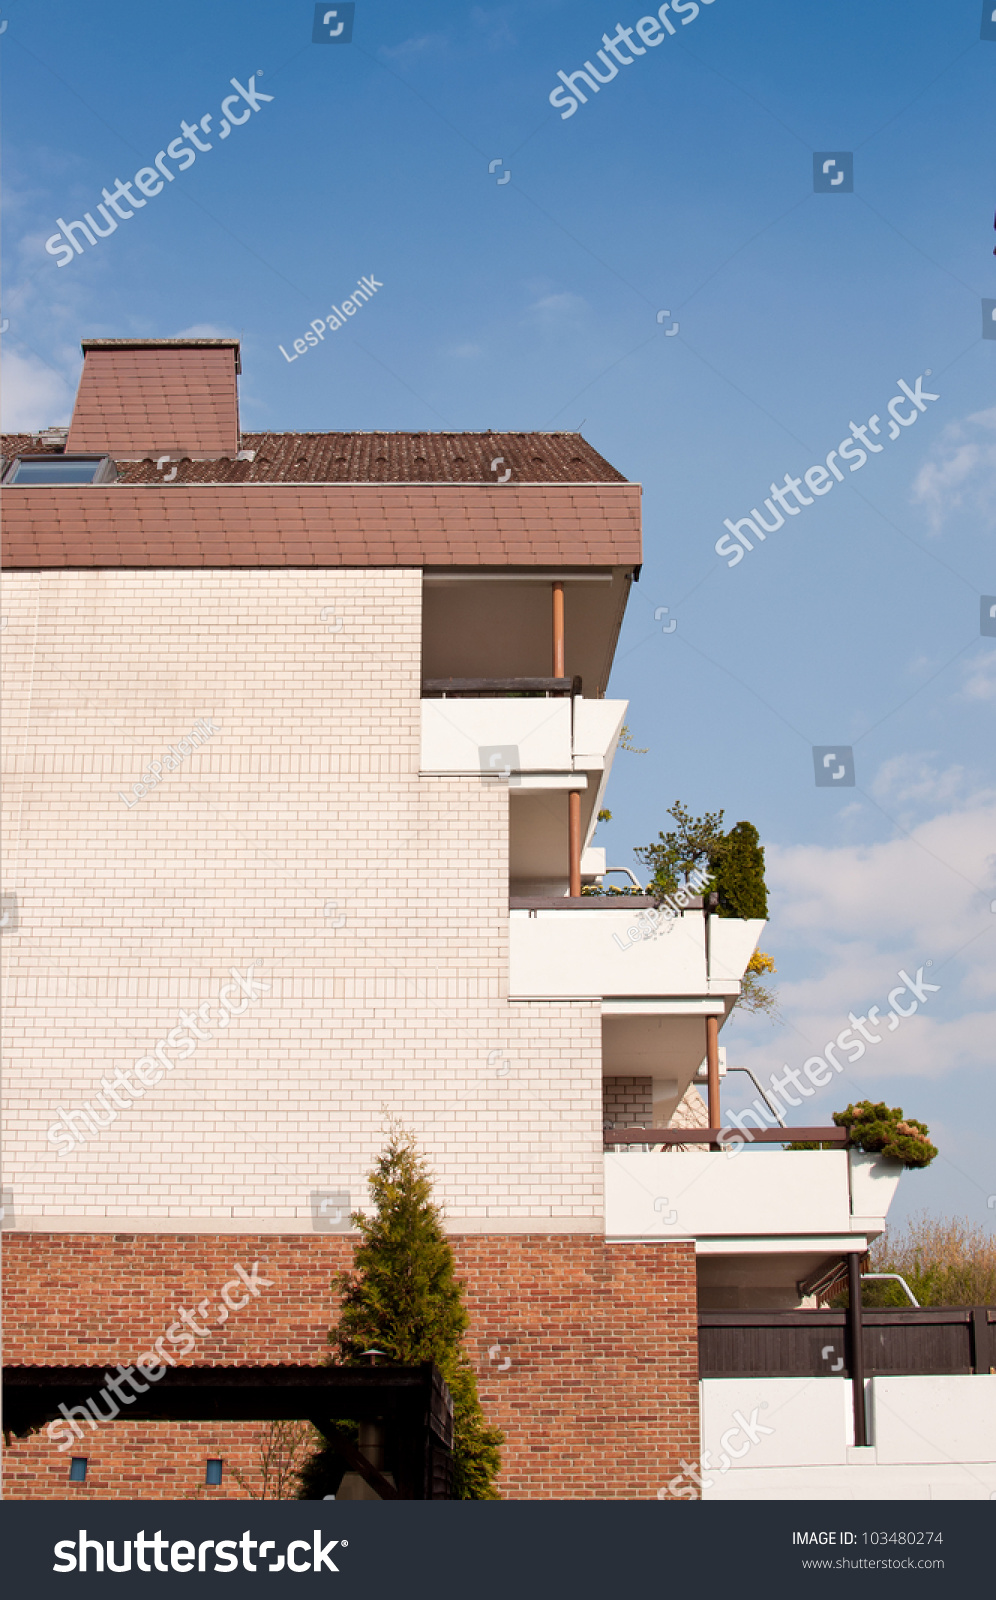 Apartment building with terrace balconies stock photo for Building balcony